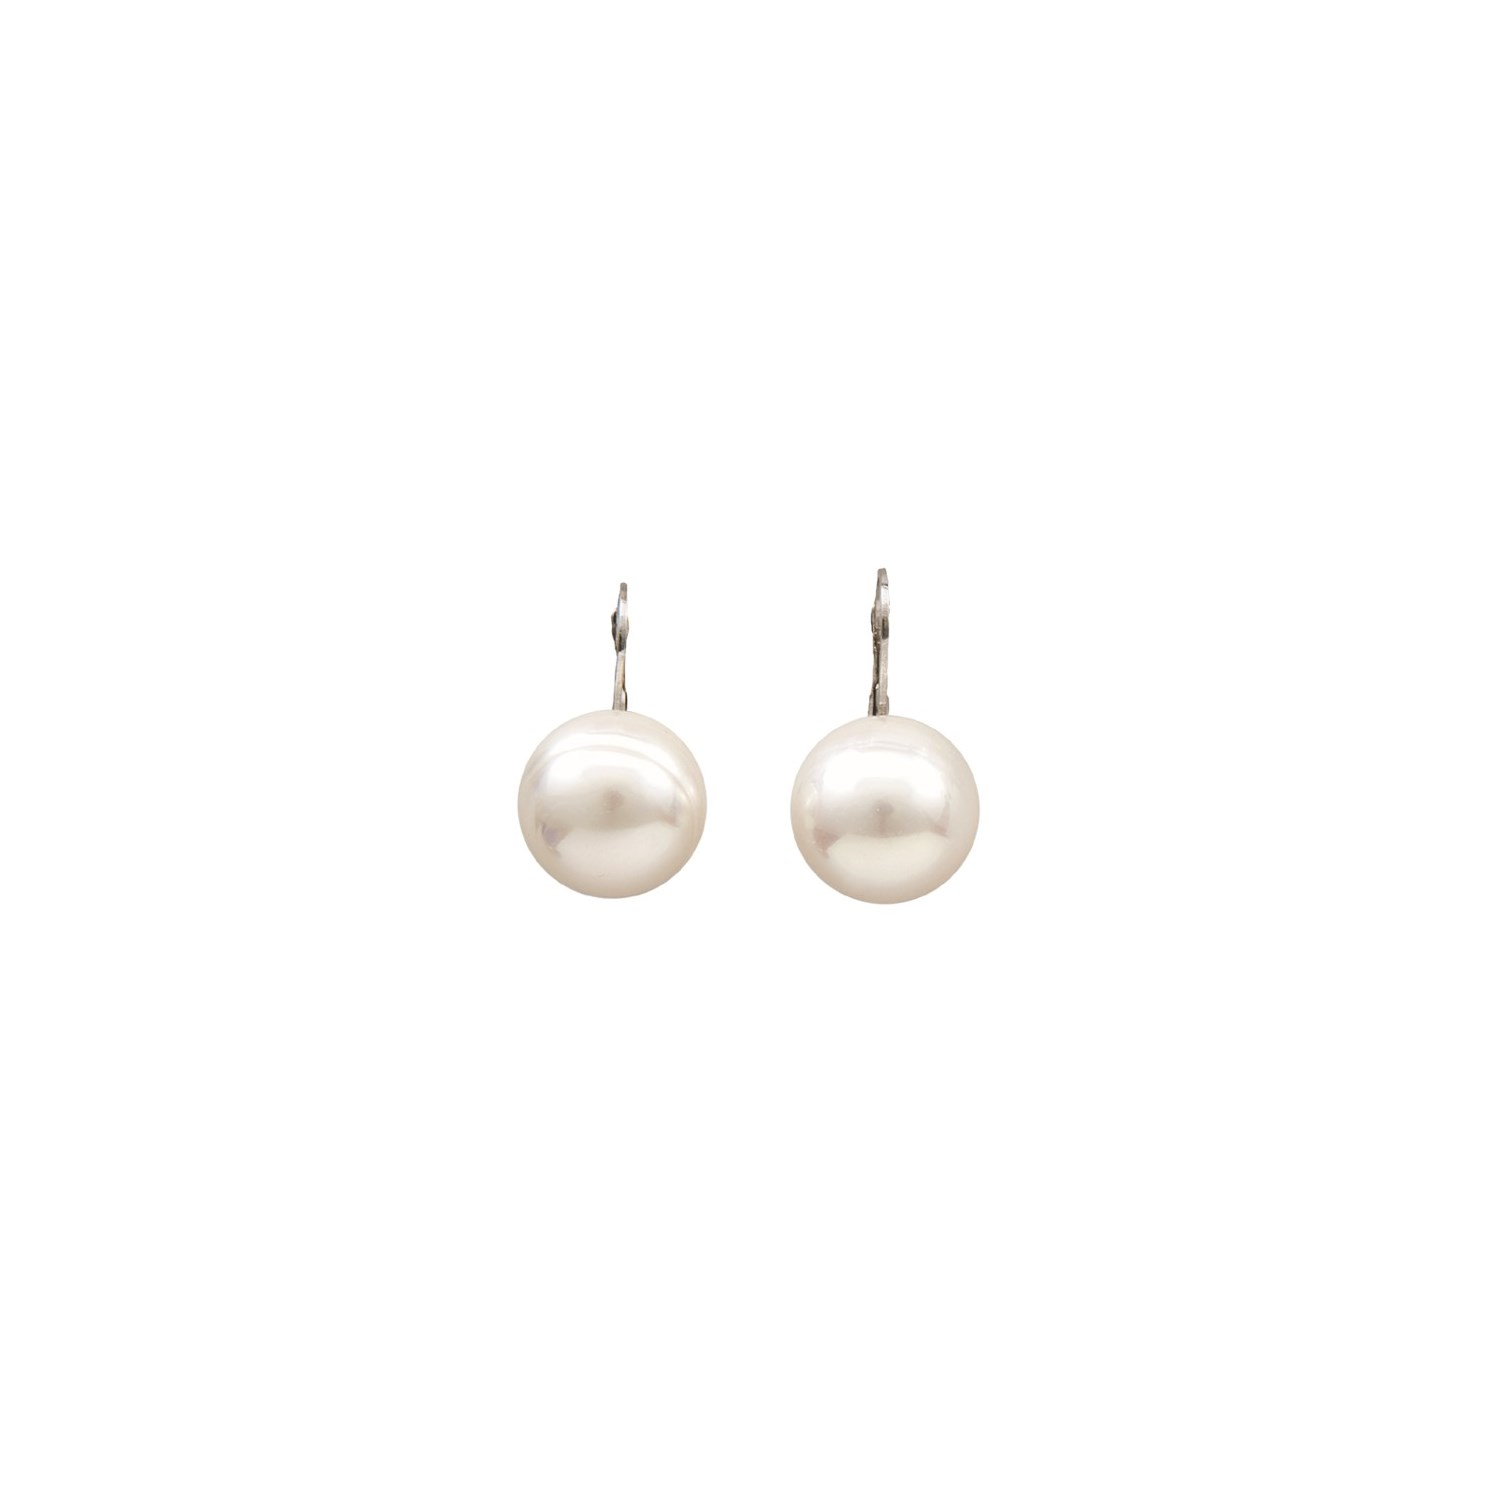 on rakuten giant pacific shop yellow collection gold pearl earrings pearls filled white posts stud product pacificpearl bora